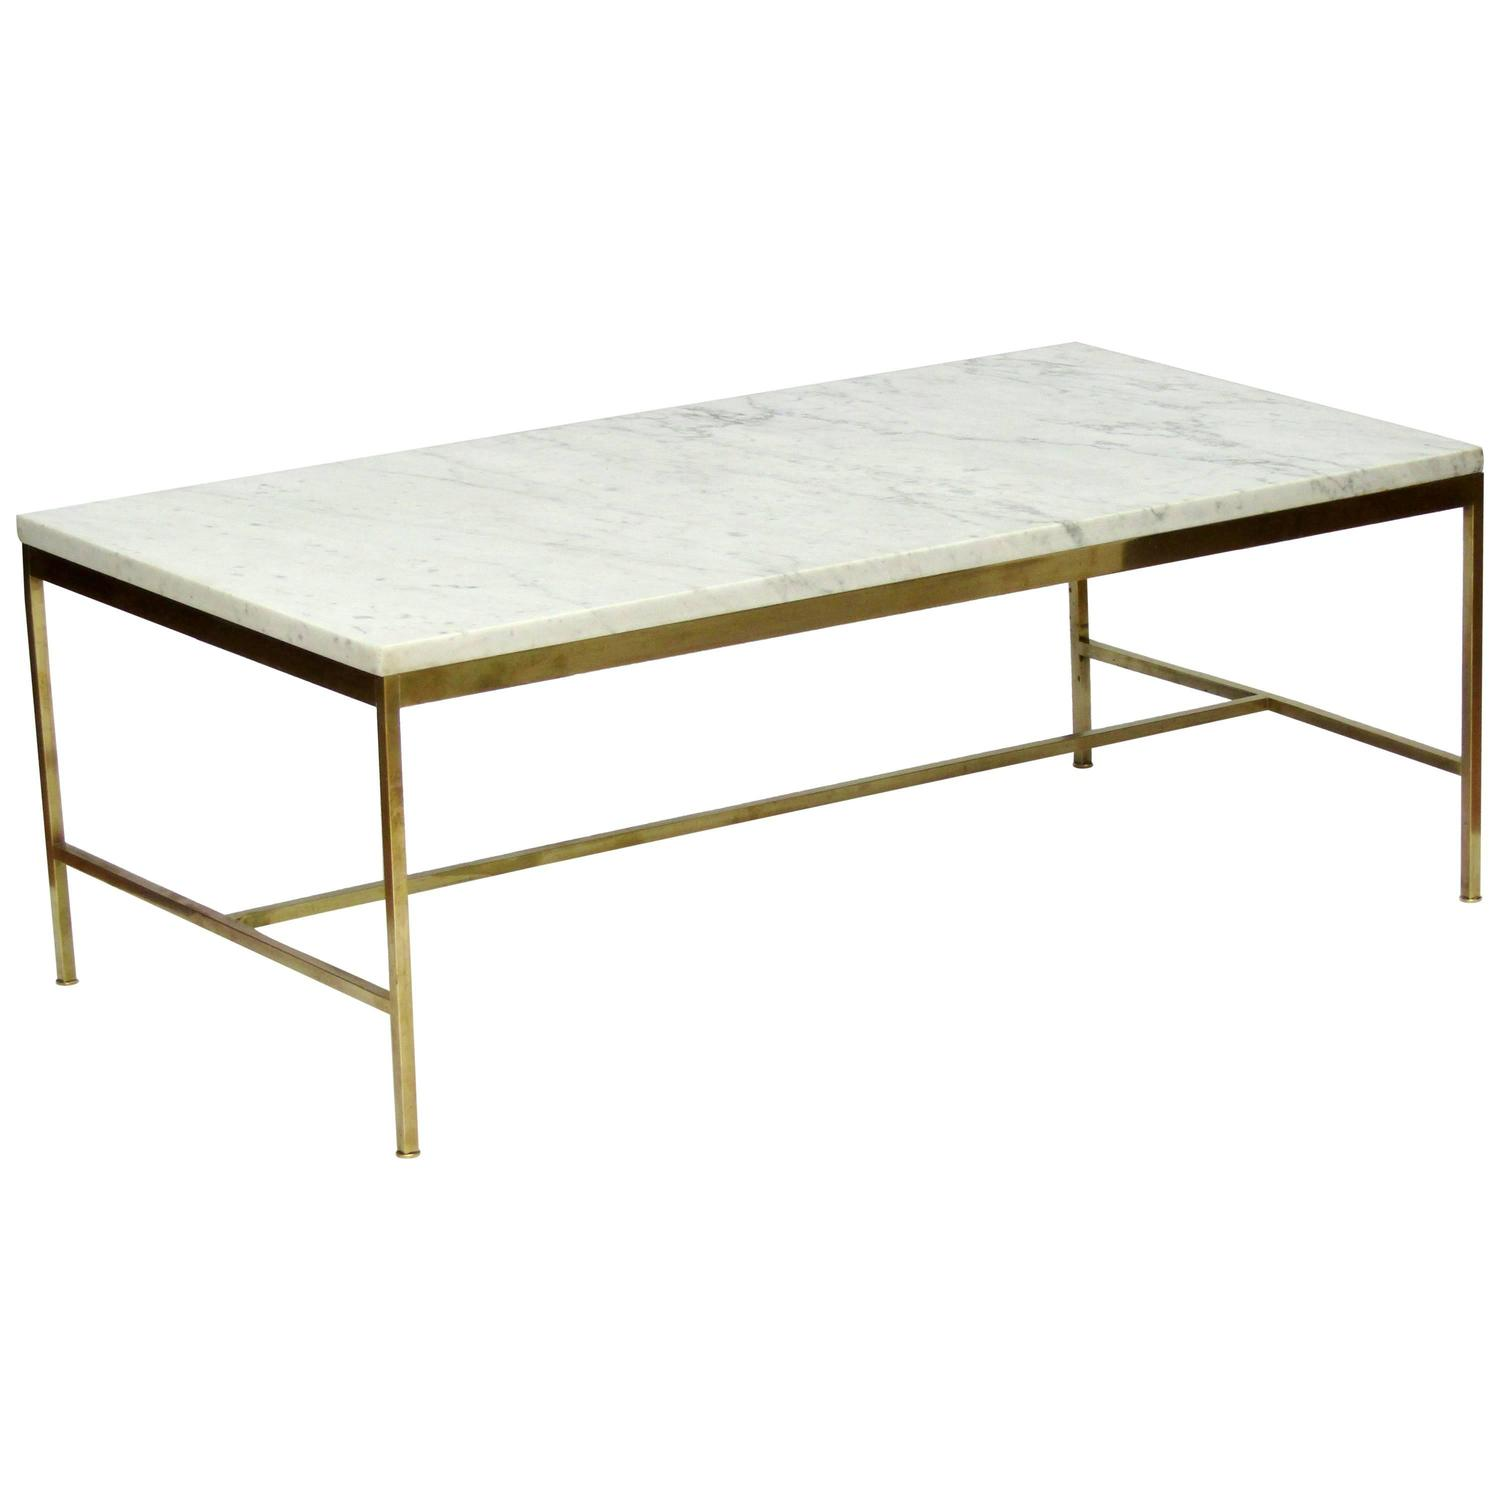 1950s Marble And Br Coffee Table By Paul Mccobb At 1stdibs